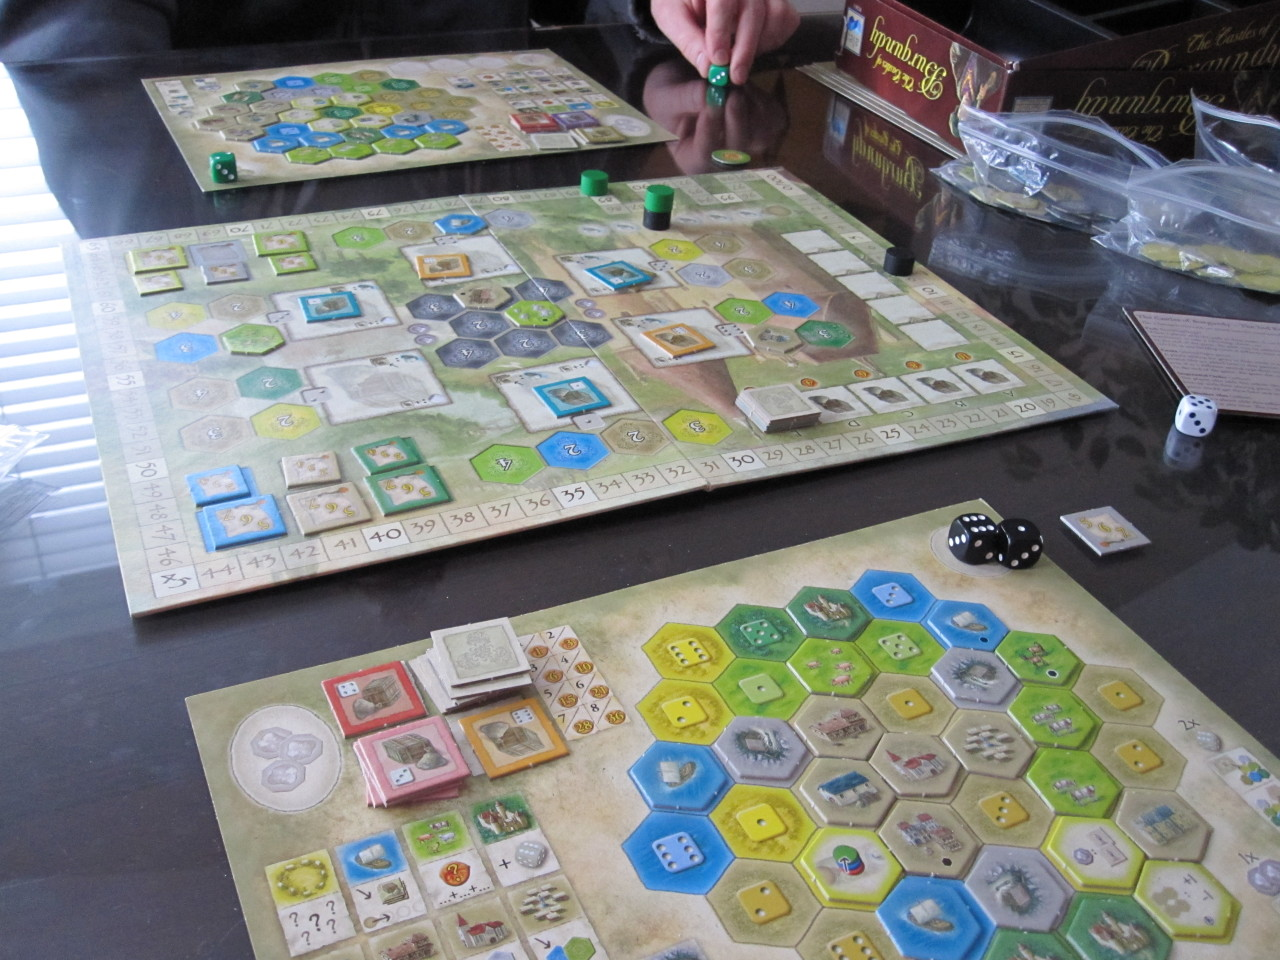 """I'm having fun"" -Jeff during our game of The Castles of Burgundy today.  Unfortunately for him, my #7 board was firing on all cylinders and I edged out the win.  He played a good game, though!"